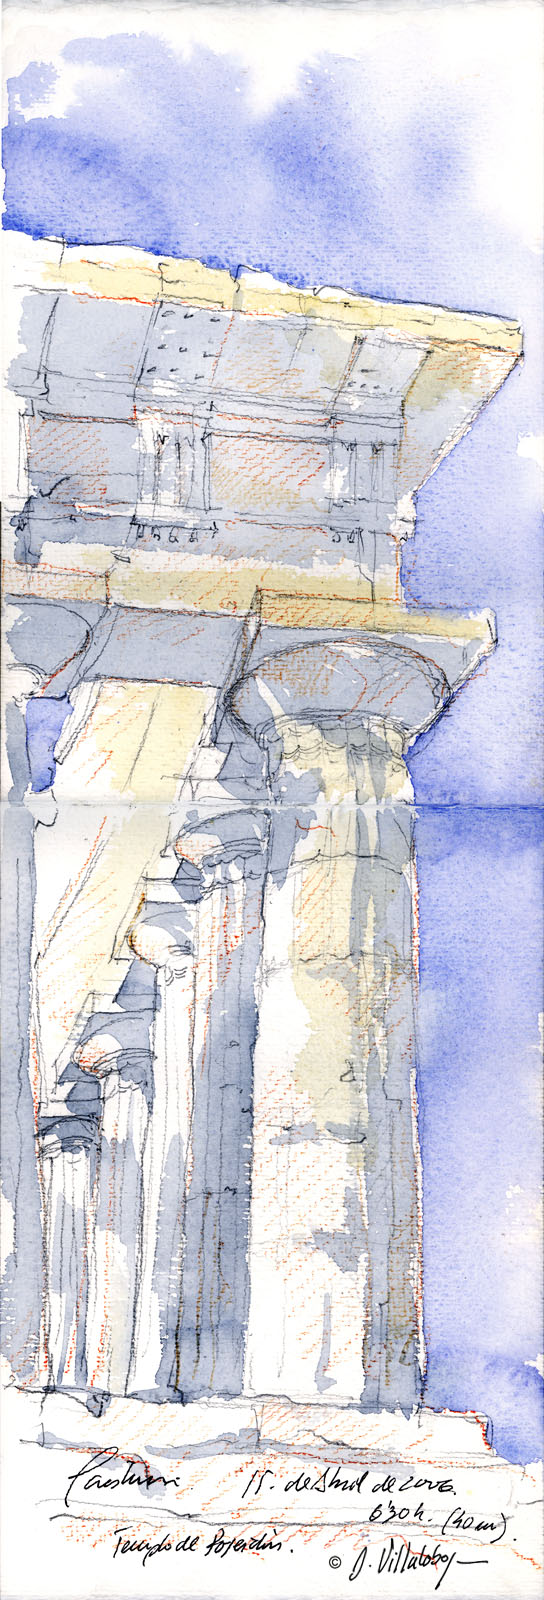 danielvillalobos-architecture-sketchbook-sketch-italy-3